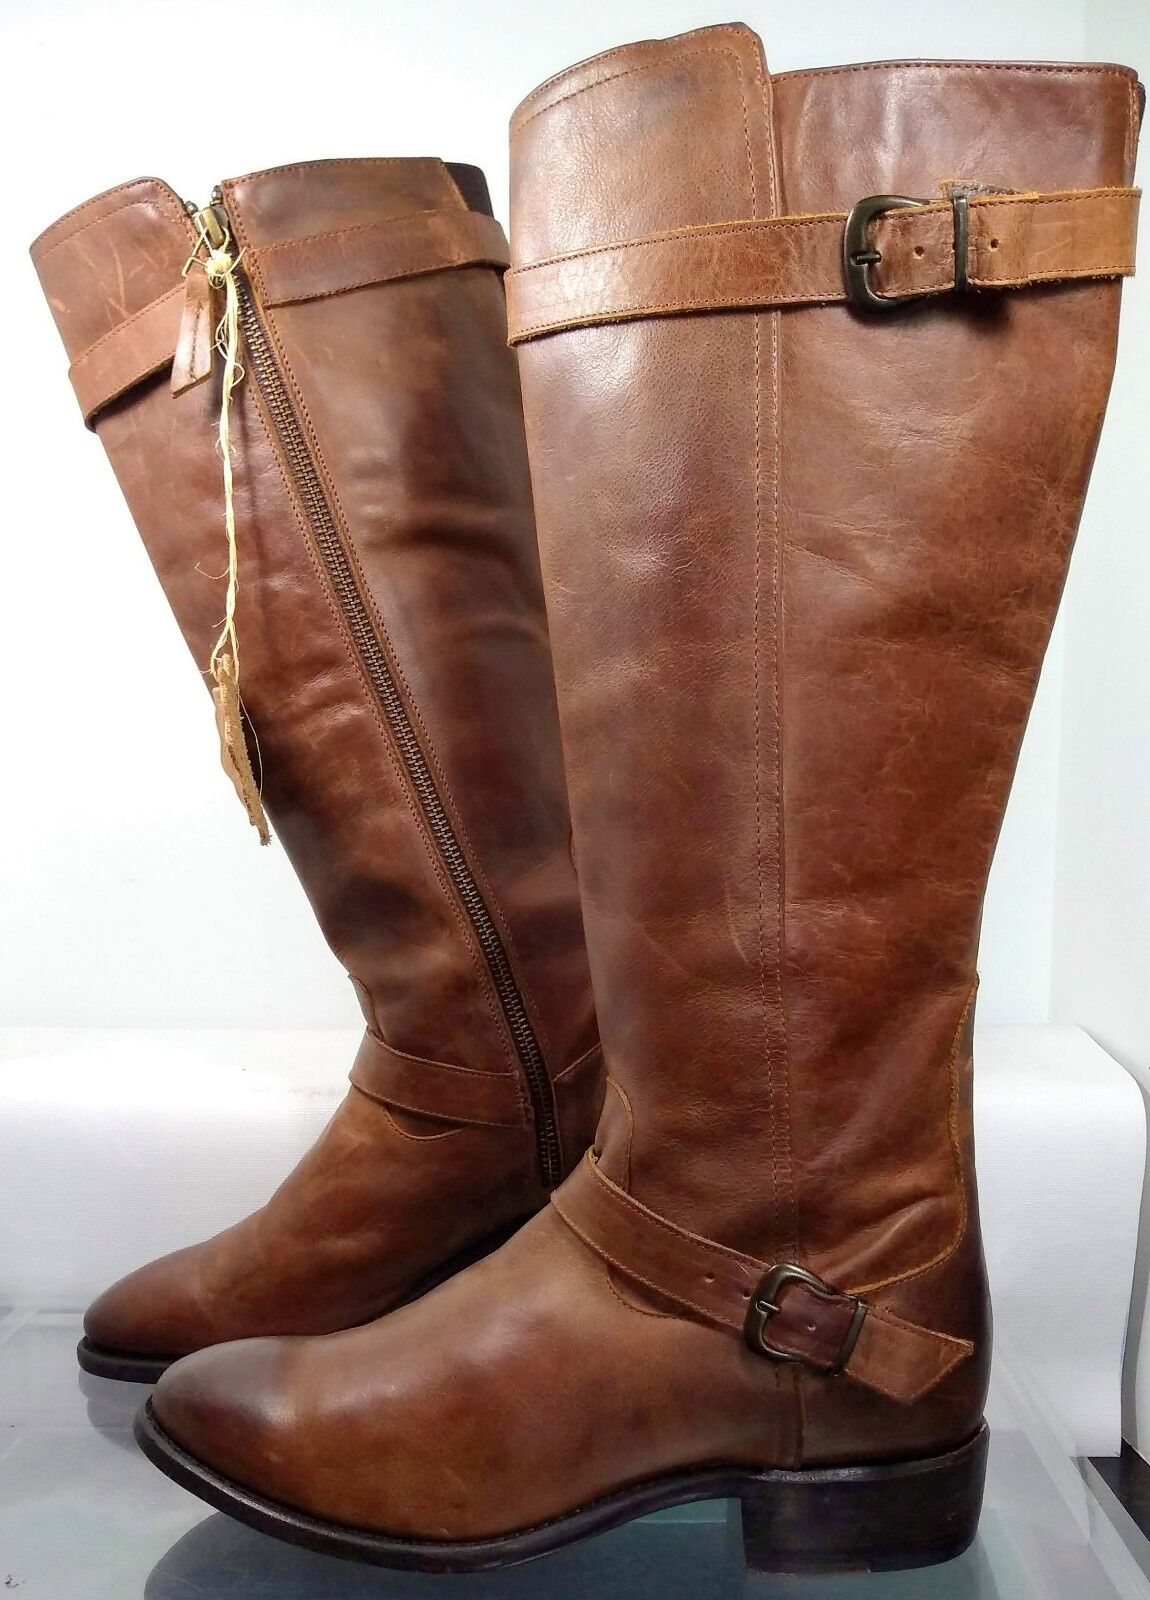 SONORA Double H Sydney SN 1350 Brown Leather Riding Boot US 7.5 Minimal Wear